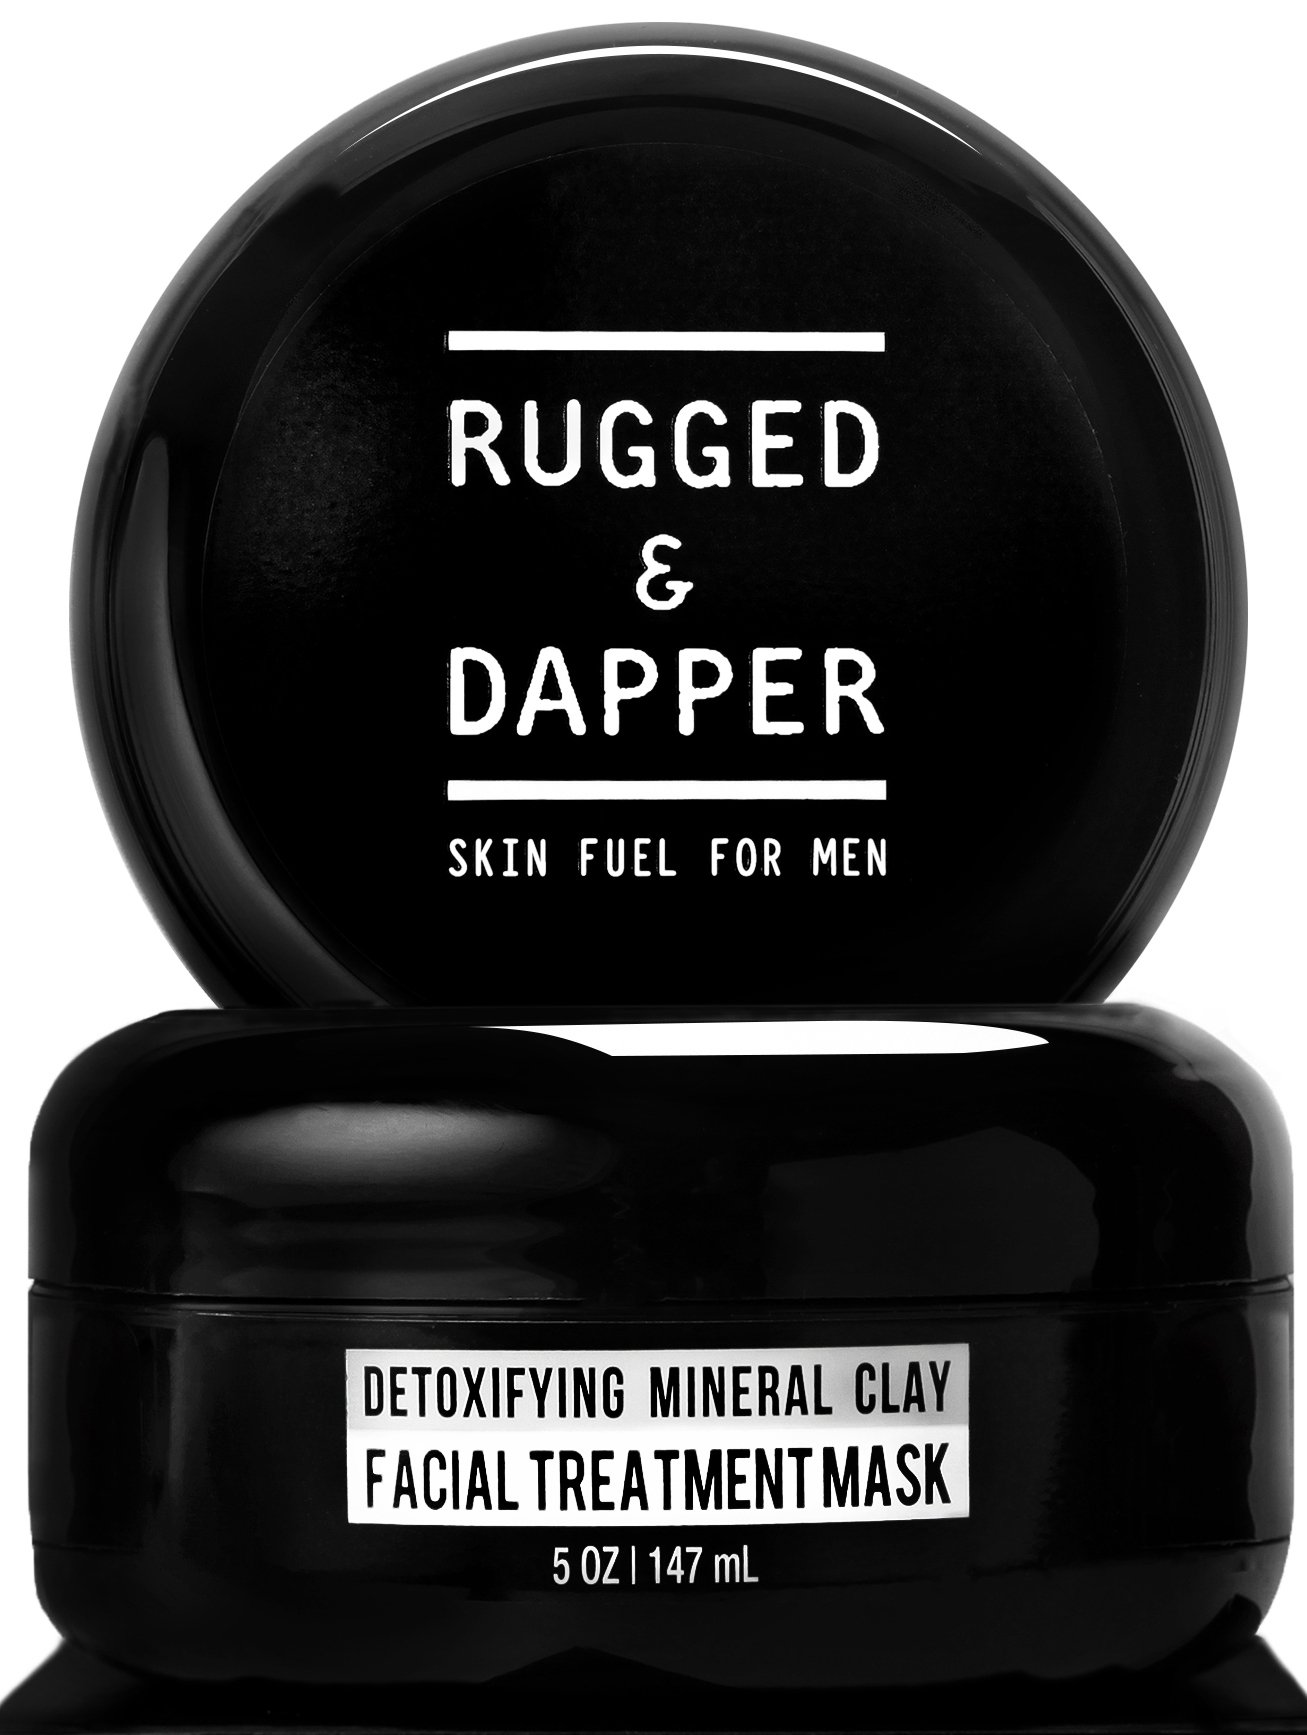 All-In-One Essential Skincare Set For Men - Grooming Kit - Age + Damage Defense Facial Moisturizer - Daily Power Scrub Cleanser - Detox Mineral Clay Facial Mask - Natural & Certified Organic by RUGGED & DAPPER (Image #6)